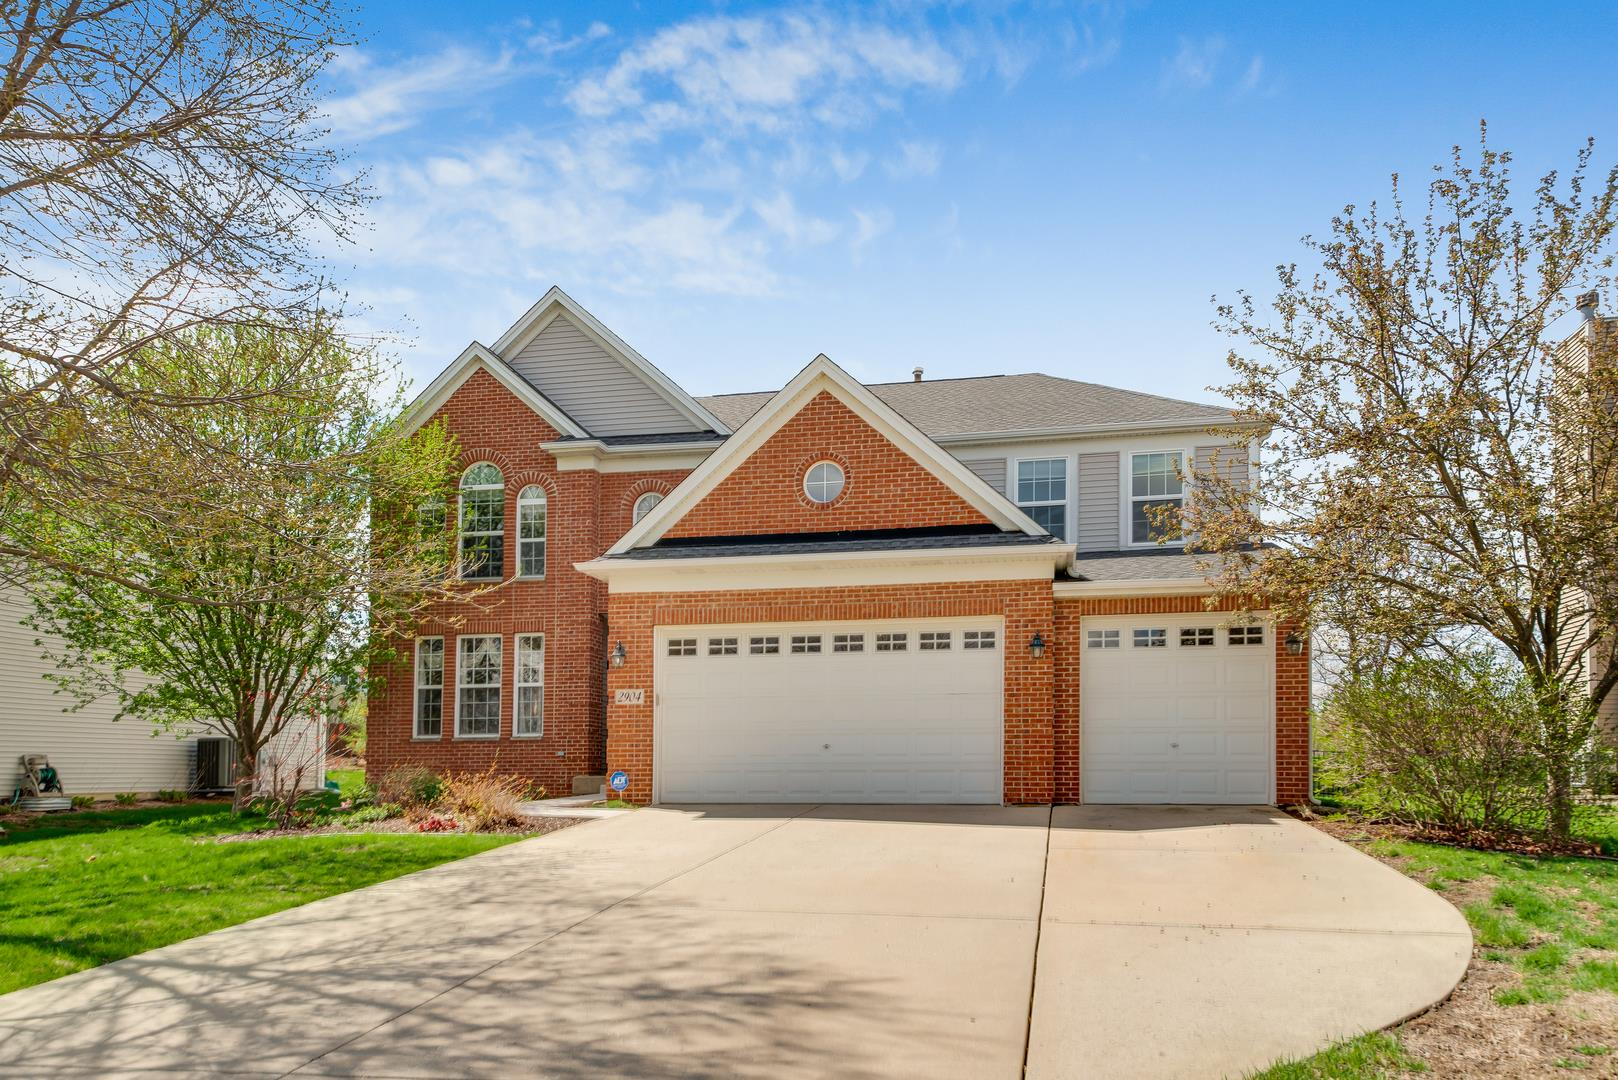 2904 McDuffee Circle, North Aurora, IL 60542 - #: 11053435